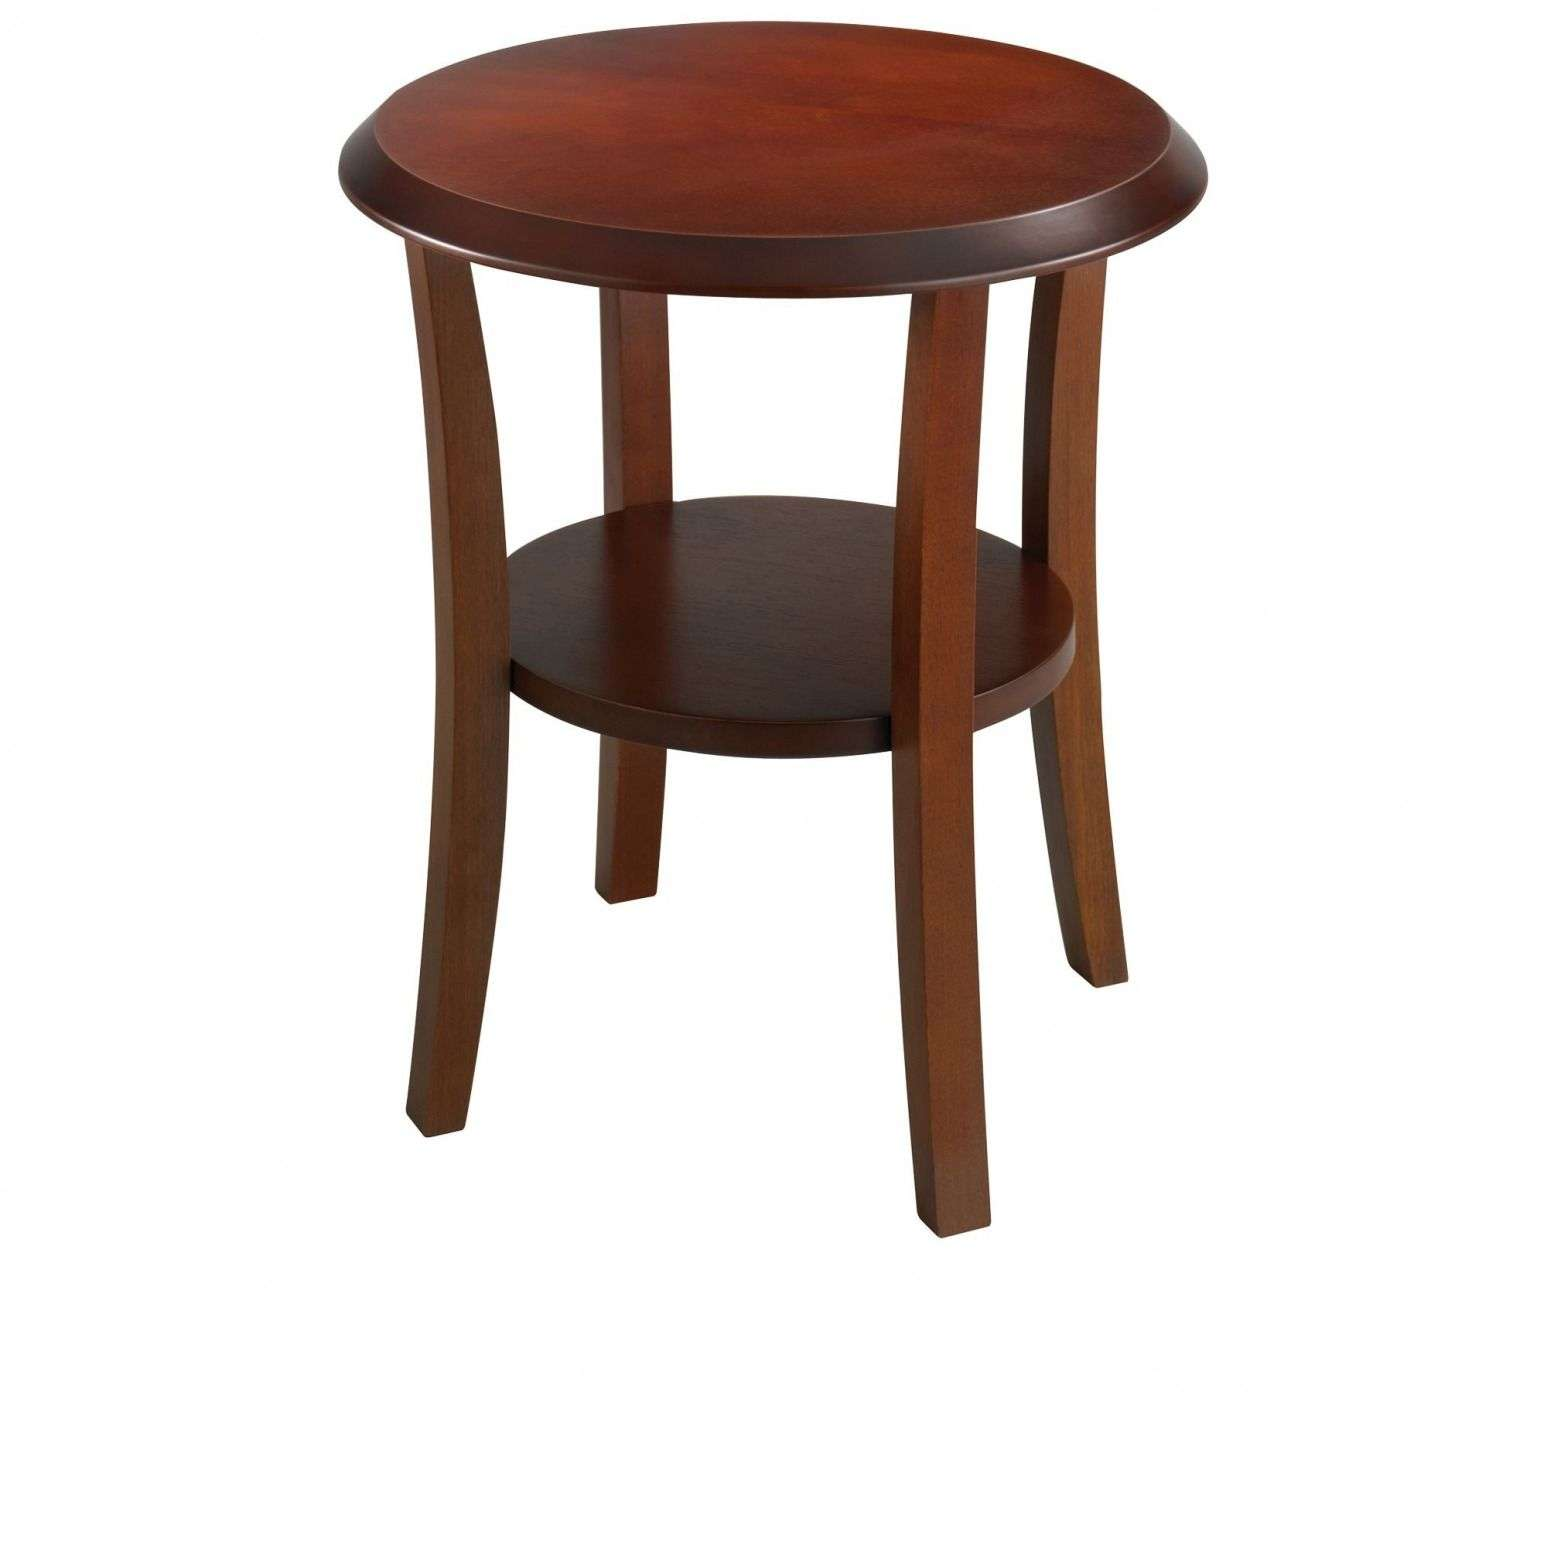 round cherry wood end tables best master furniture check ideas outdoor side table with umbrella hole log bedroom display case coffee sets ethan allen and ashley recliners extra